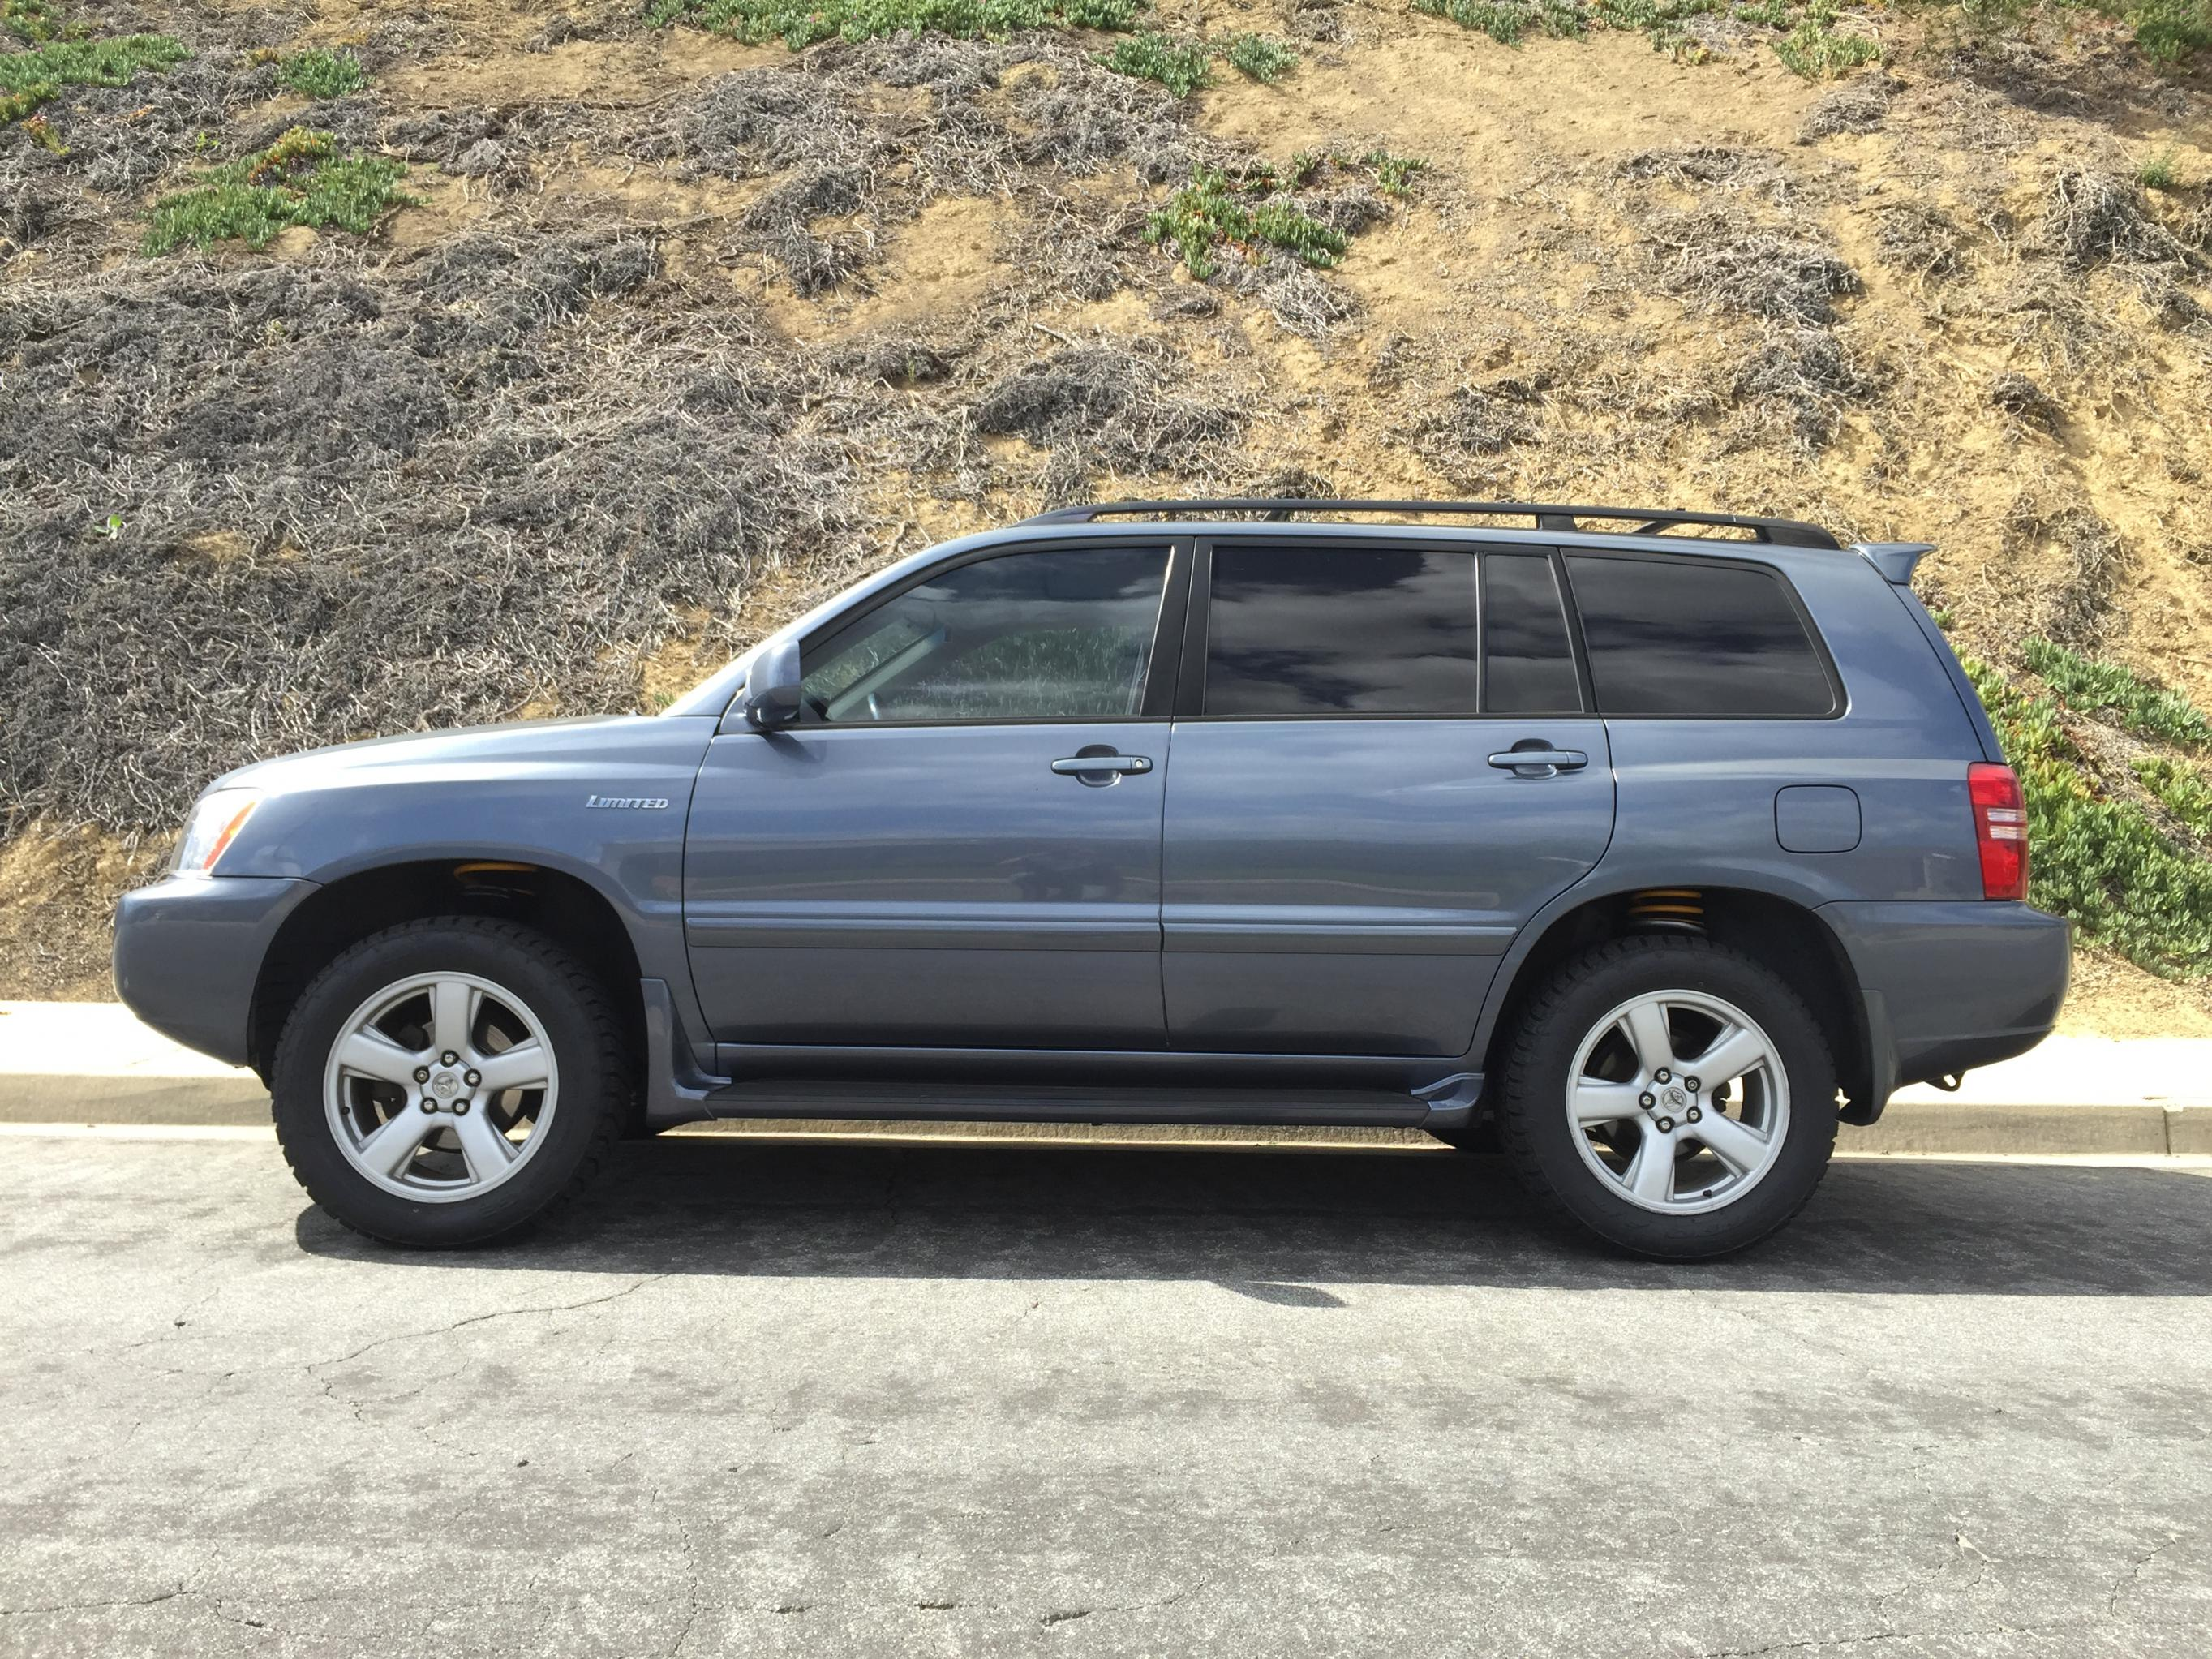 on toyota pin pinterest take brooklands and money tsw my cars highlander jeep